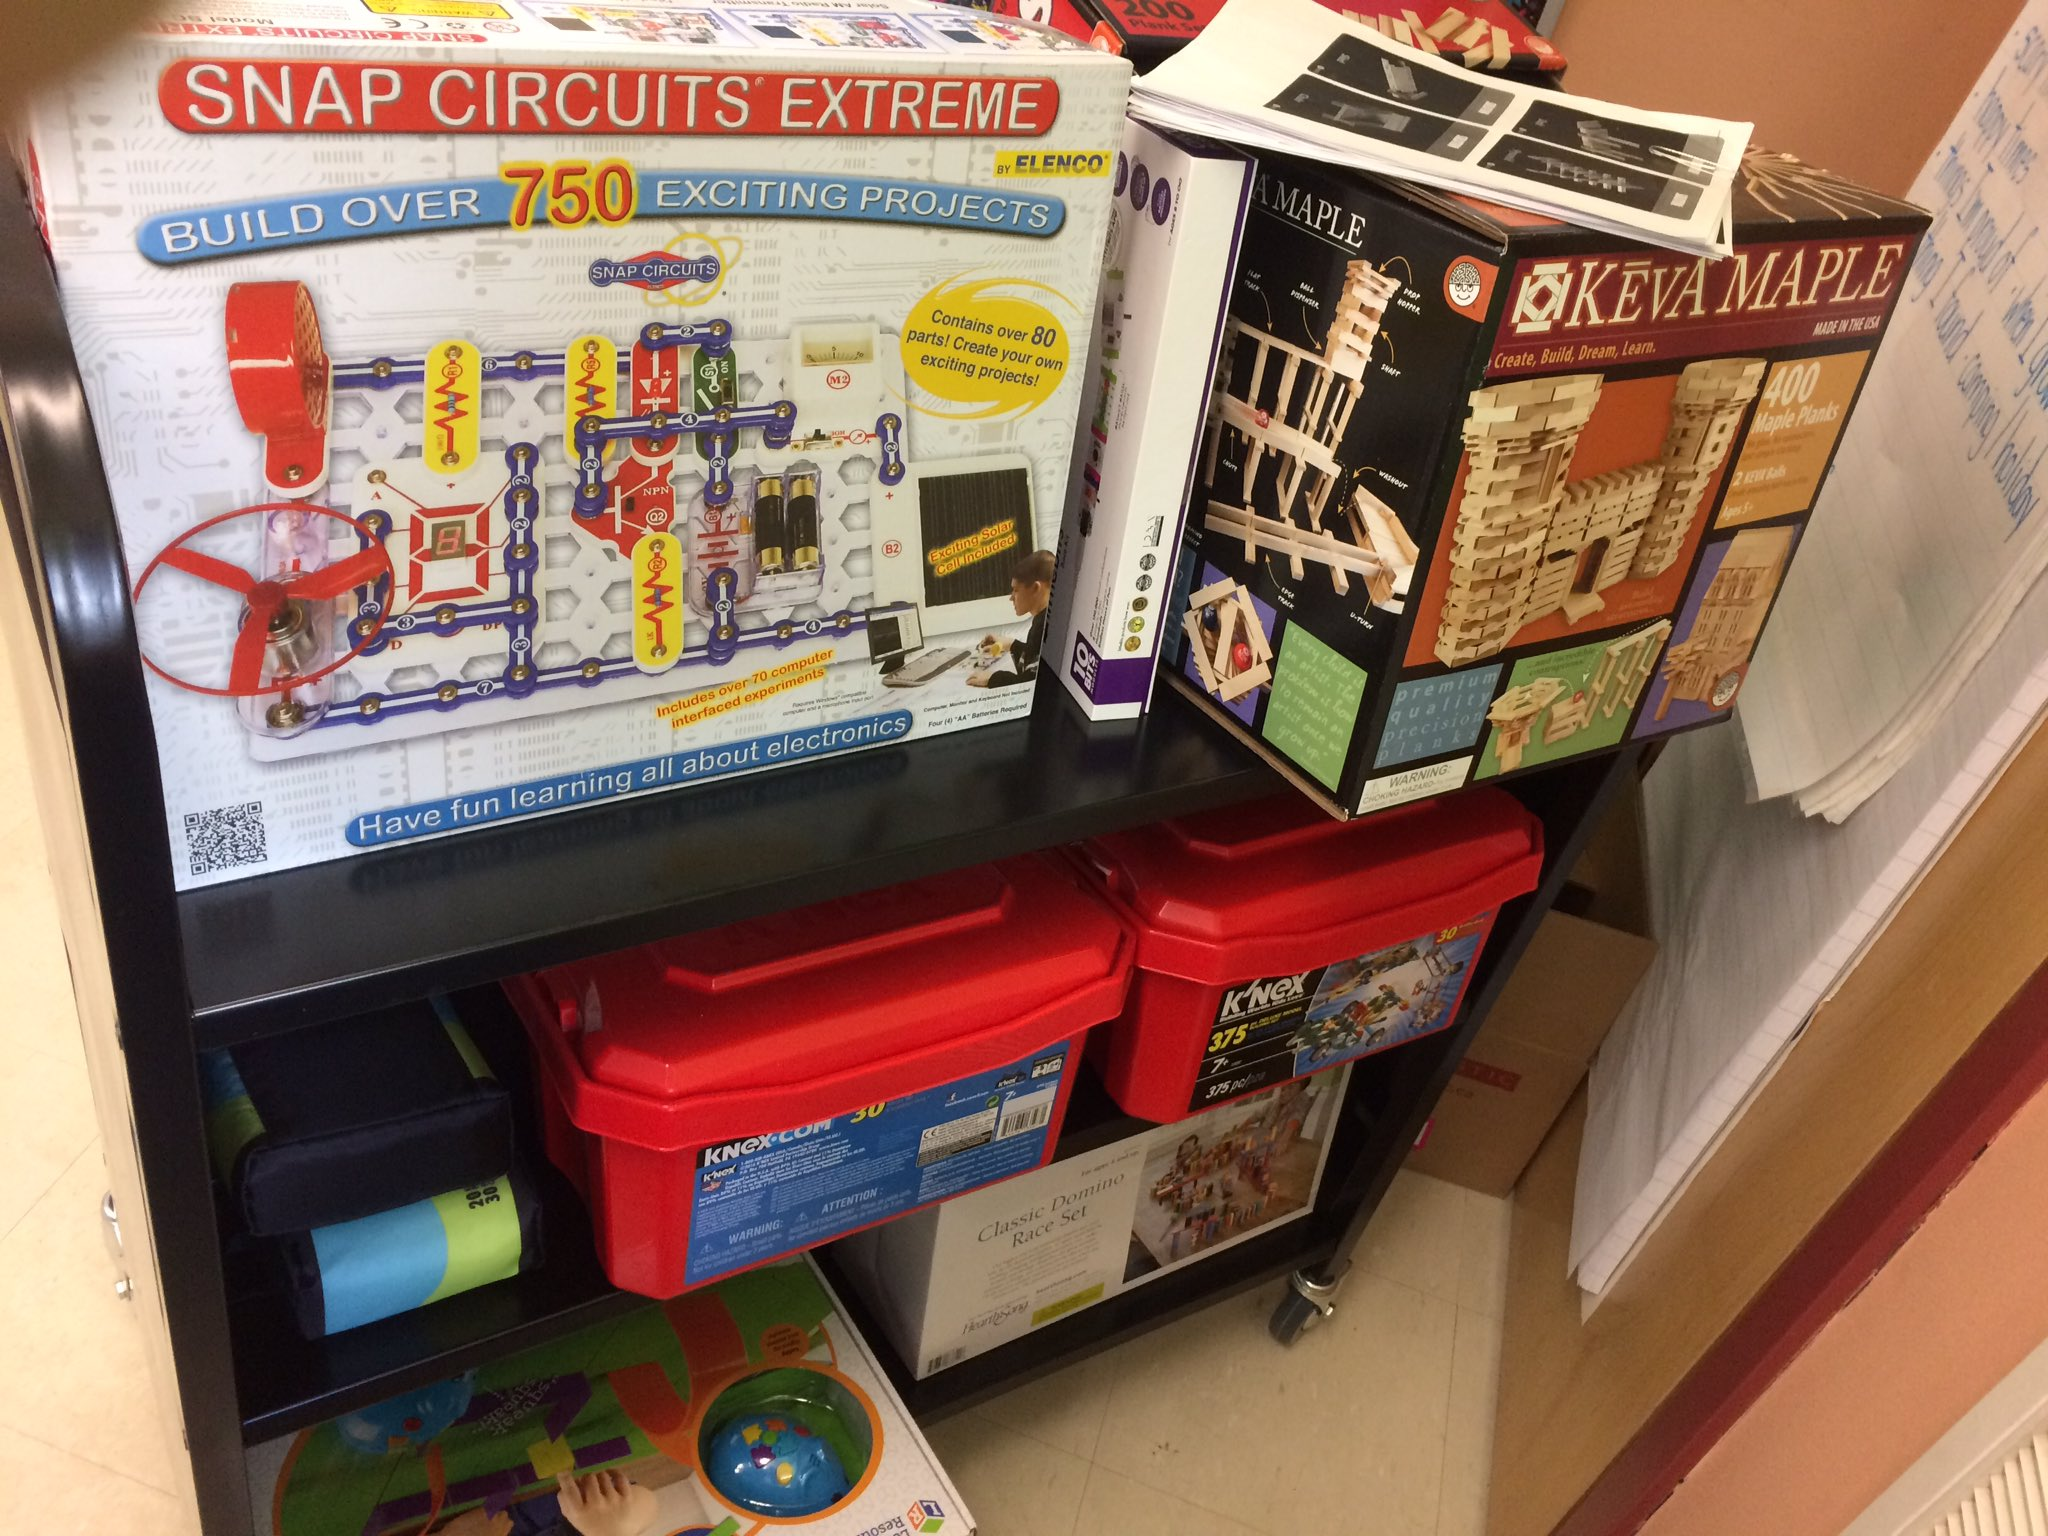 Craig Mah On Twitter Look At This Coding Cart Ready To Go Snap Circuits Extreme Makerspace Edtech Bcedchat Thanks Waltonsd43pac Specialke2 Tootlepootle